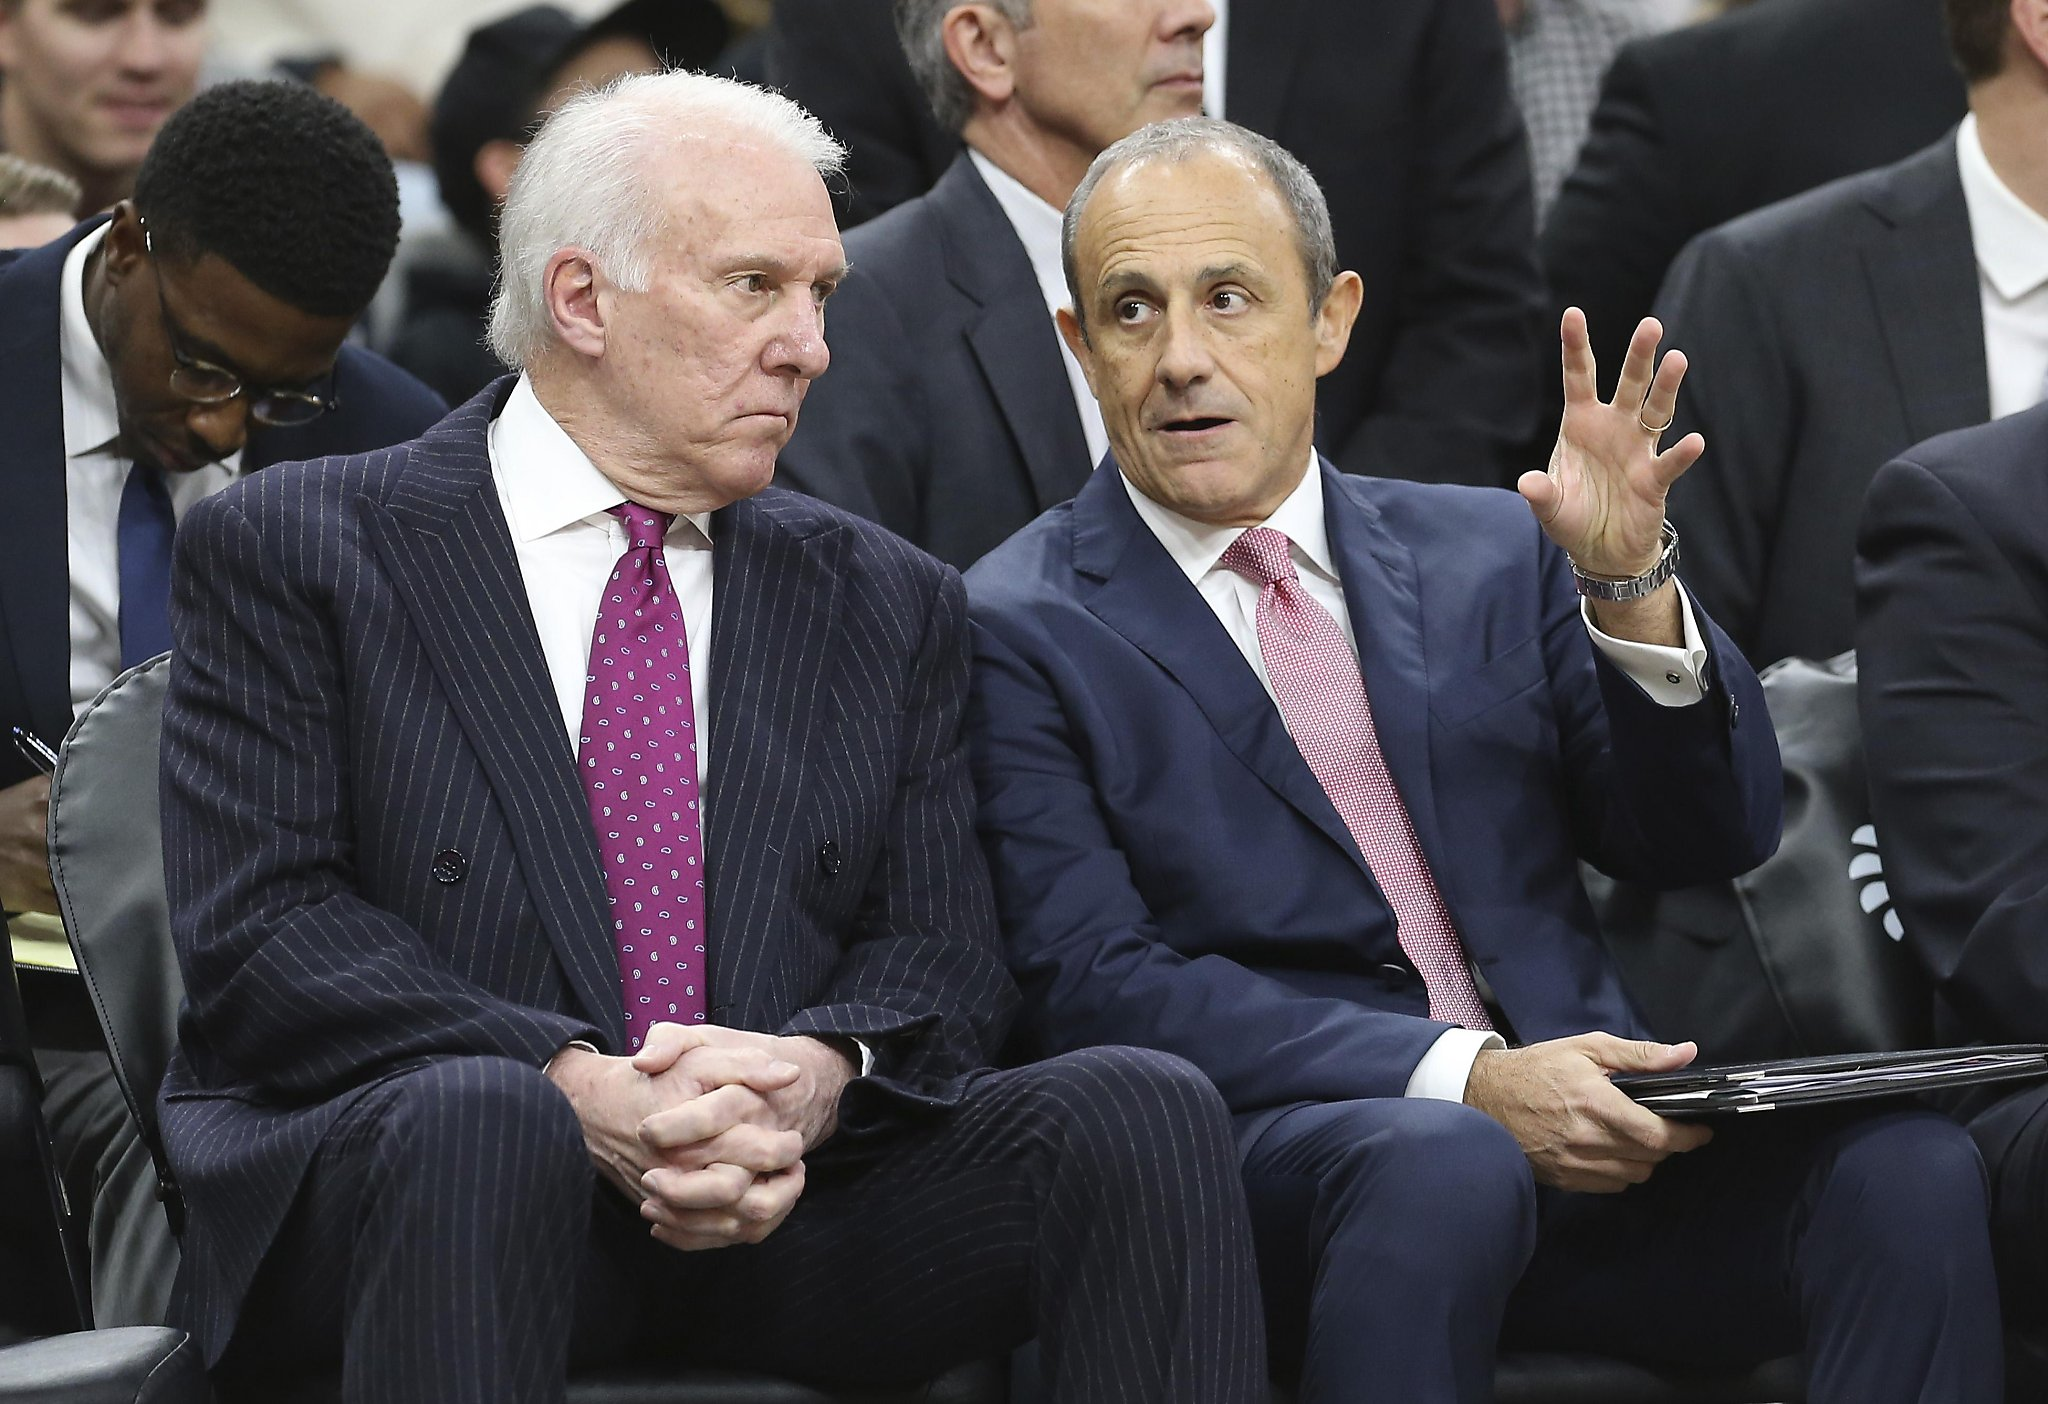 Spurs have candidates to fill coaching vacancies, Buford says